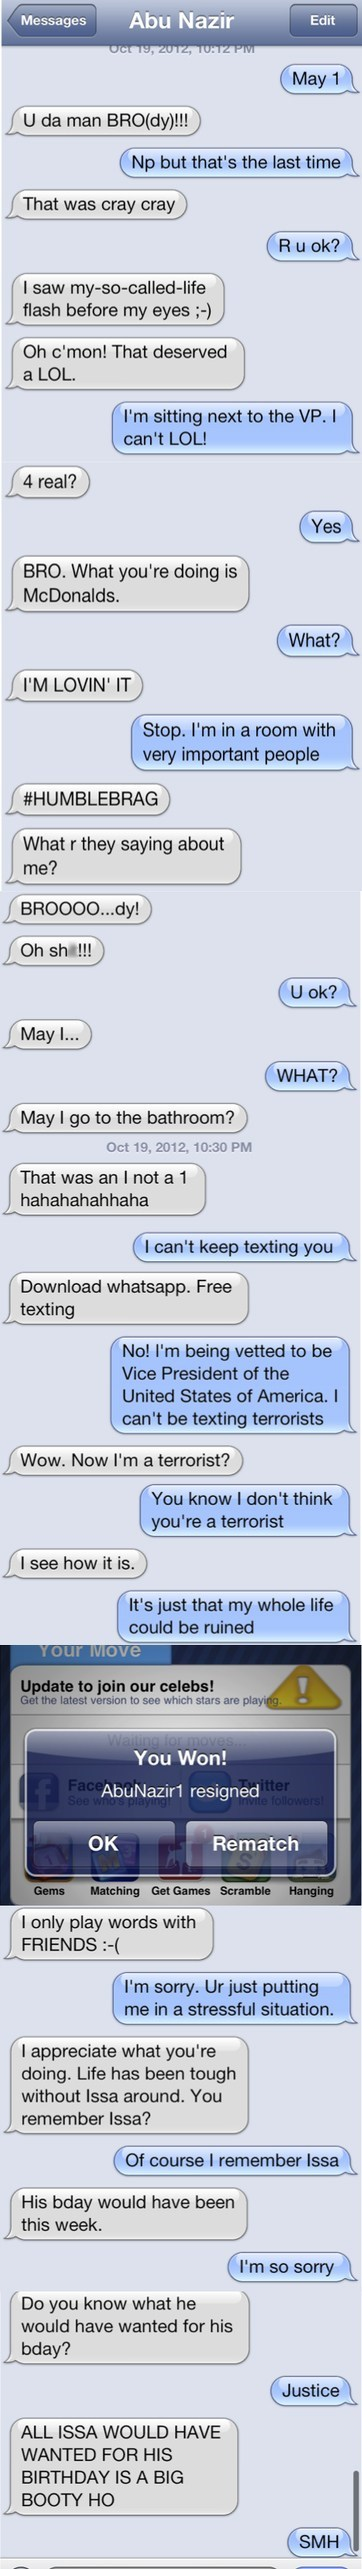 funny TV showtime homeland text message - 6698843904